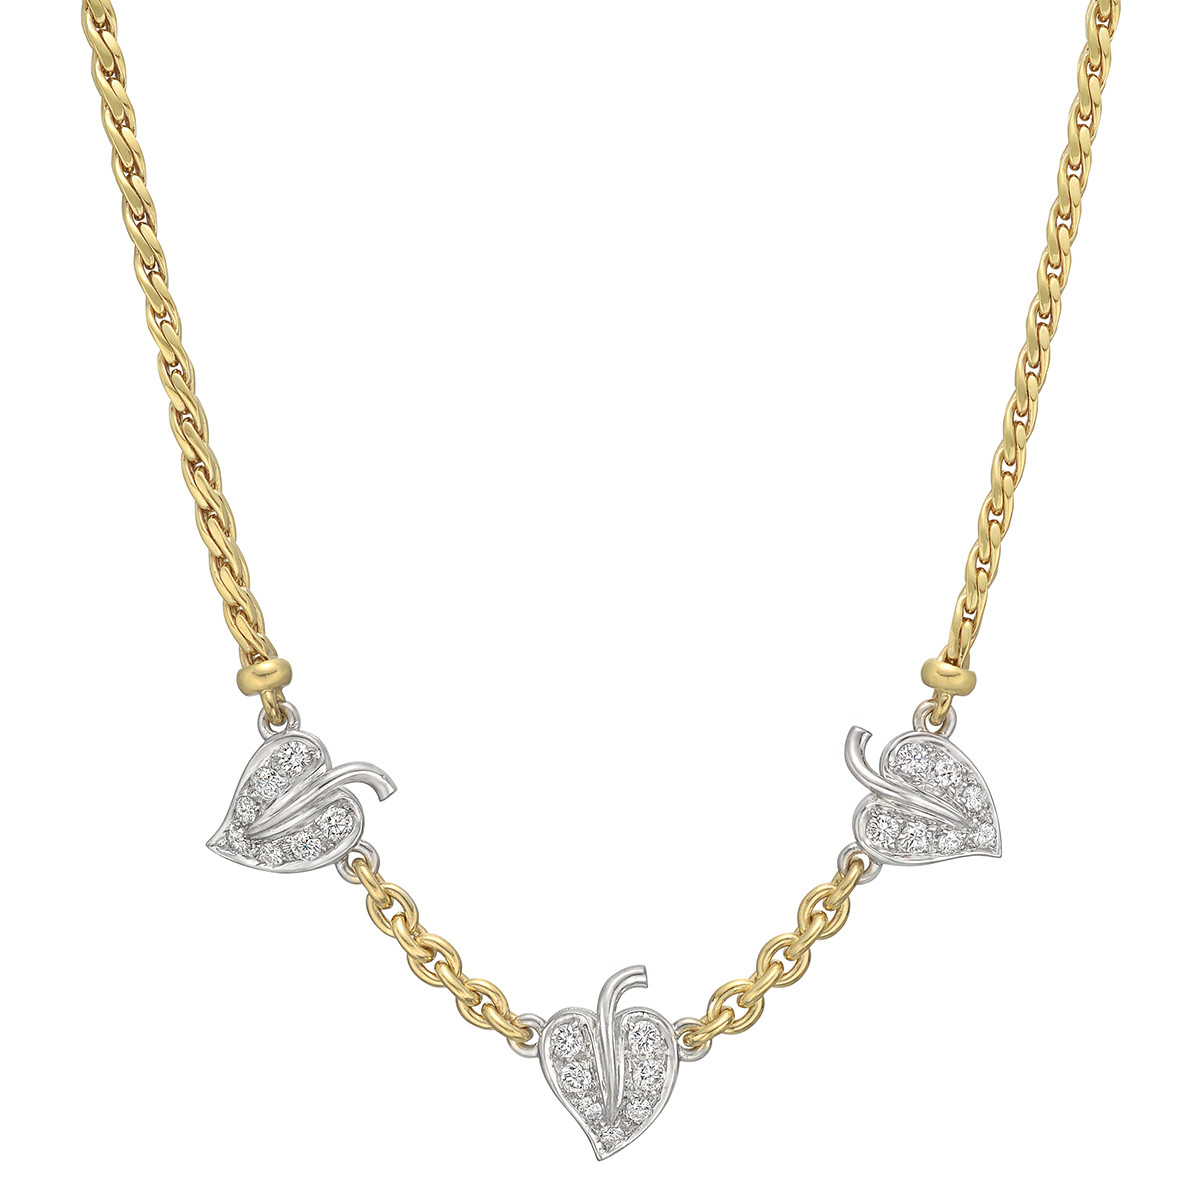 18k Yellow Gold & Diamond 3-Leaf Necklace